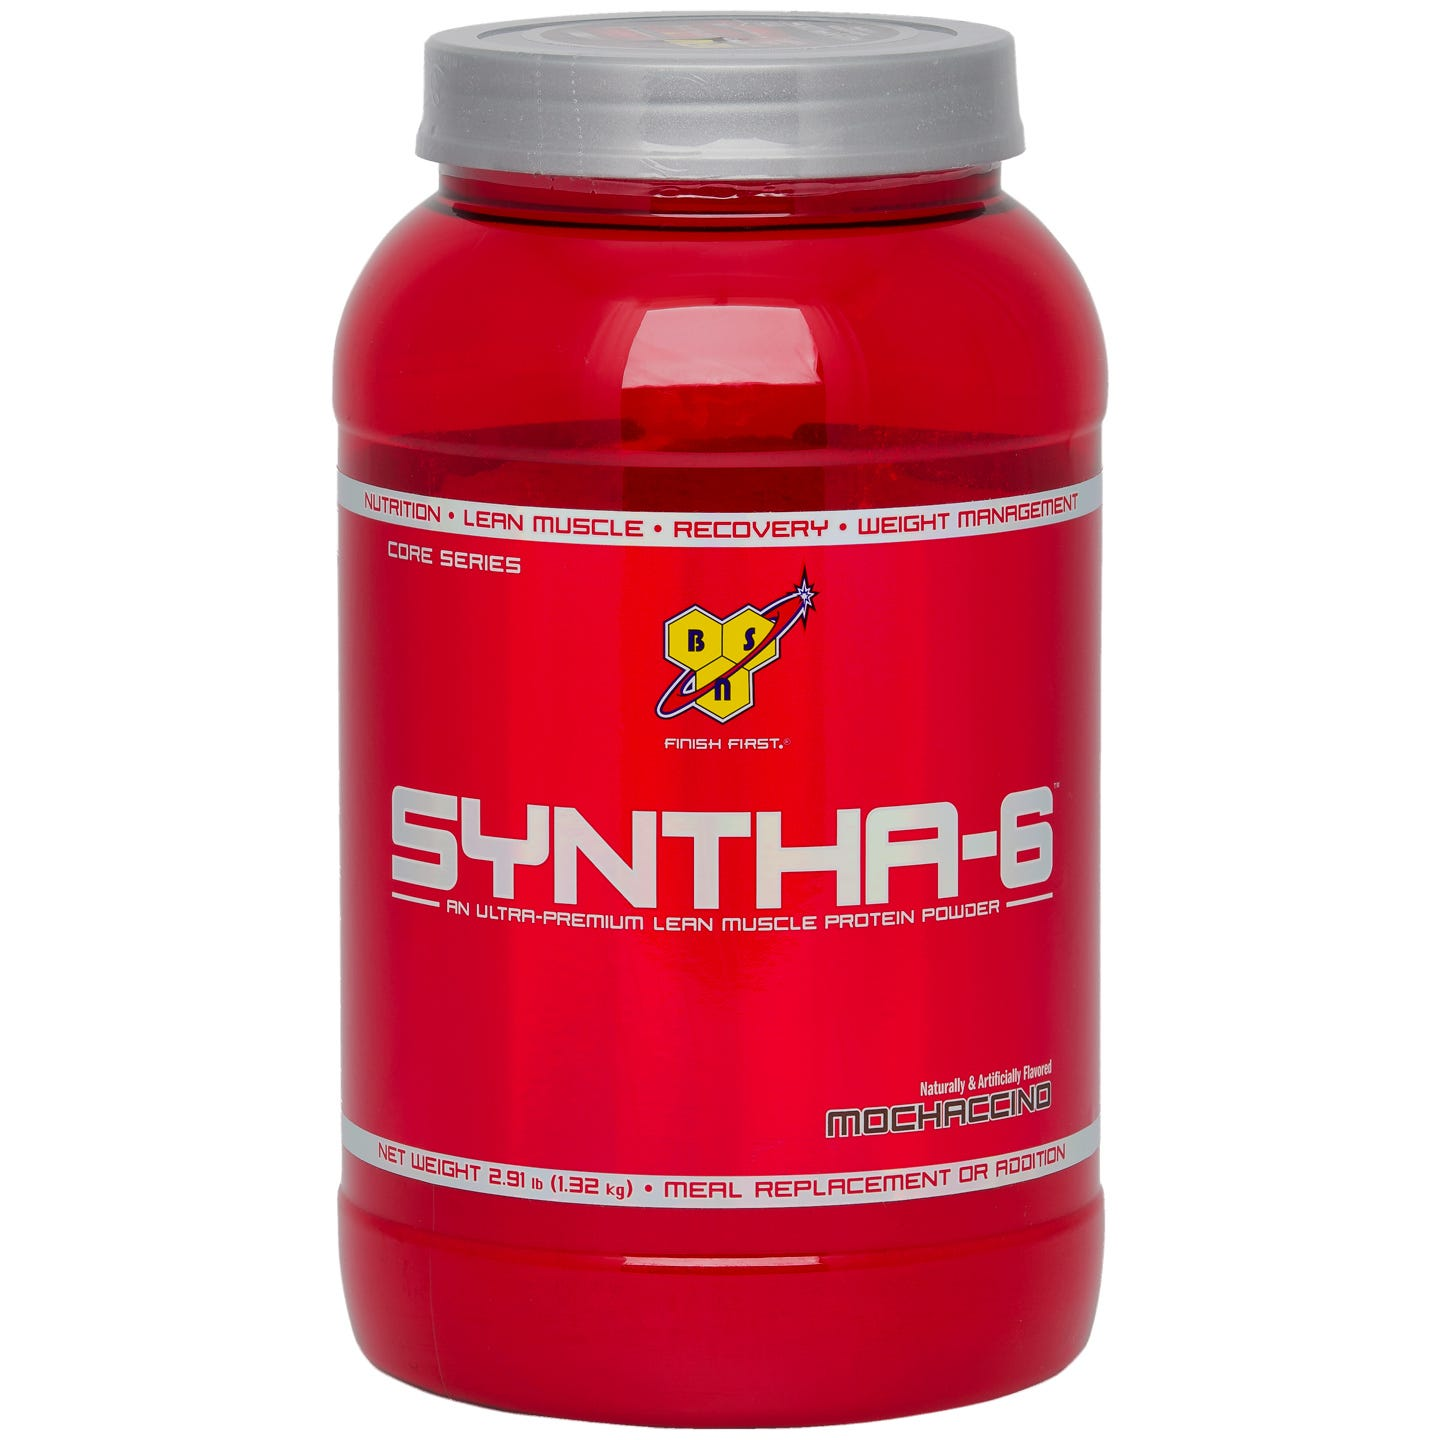 BSN Syntha-6 Sustained Release Protein Powder (2.9 lb. Container) - Mochaccino